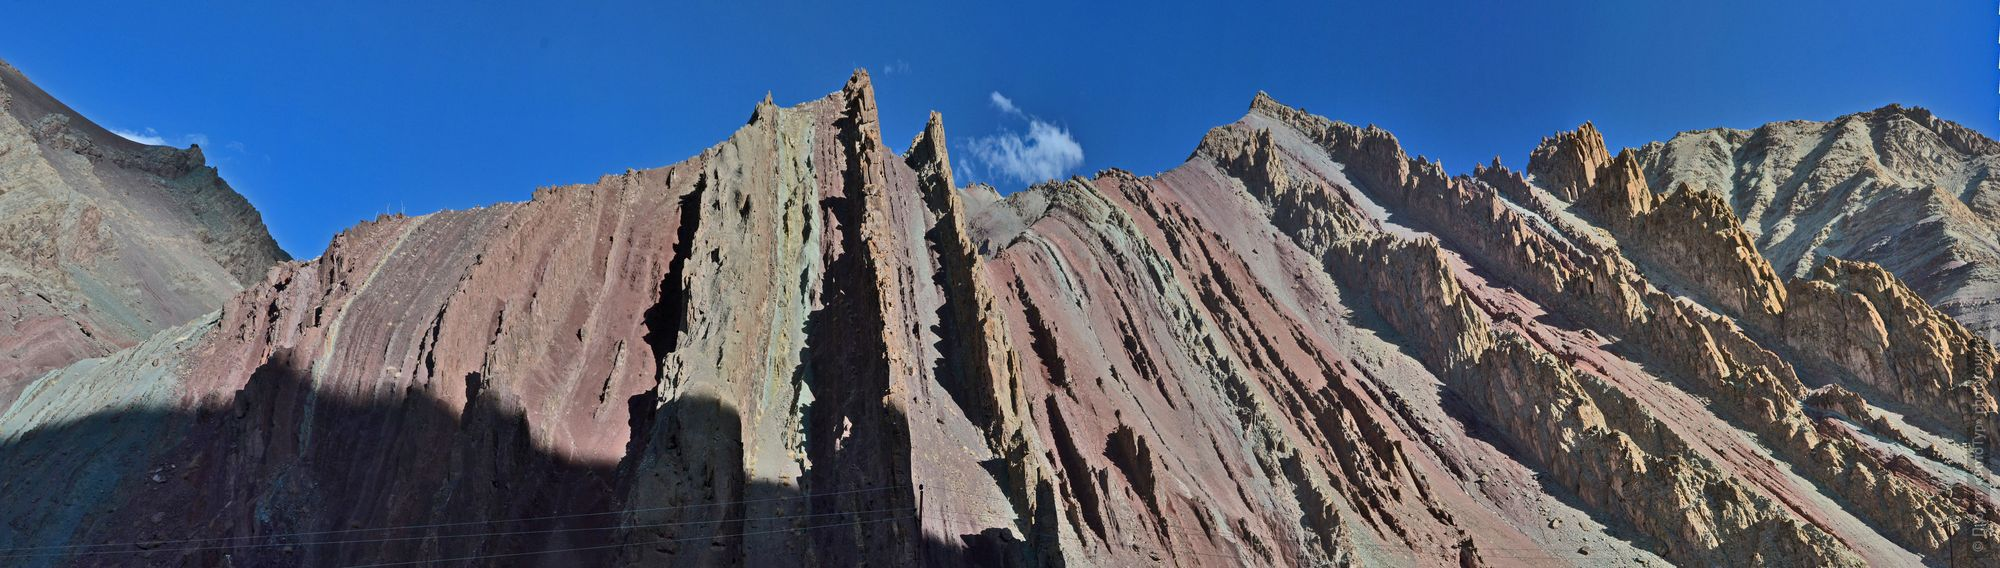 Red rocks gorge, Rumtse. Tour Legends of Tibet: Ladakh, Lamayuru, Da Khan and Nubra, 19.09. - 28.09.2019.